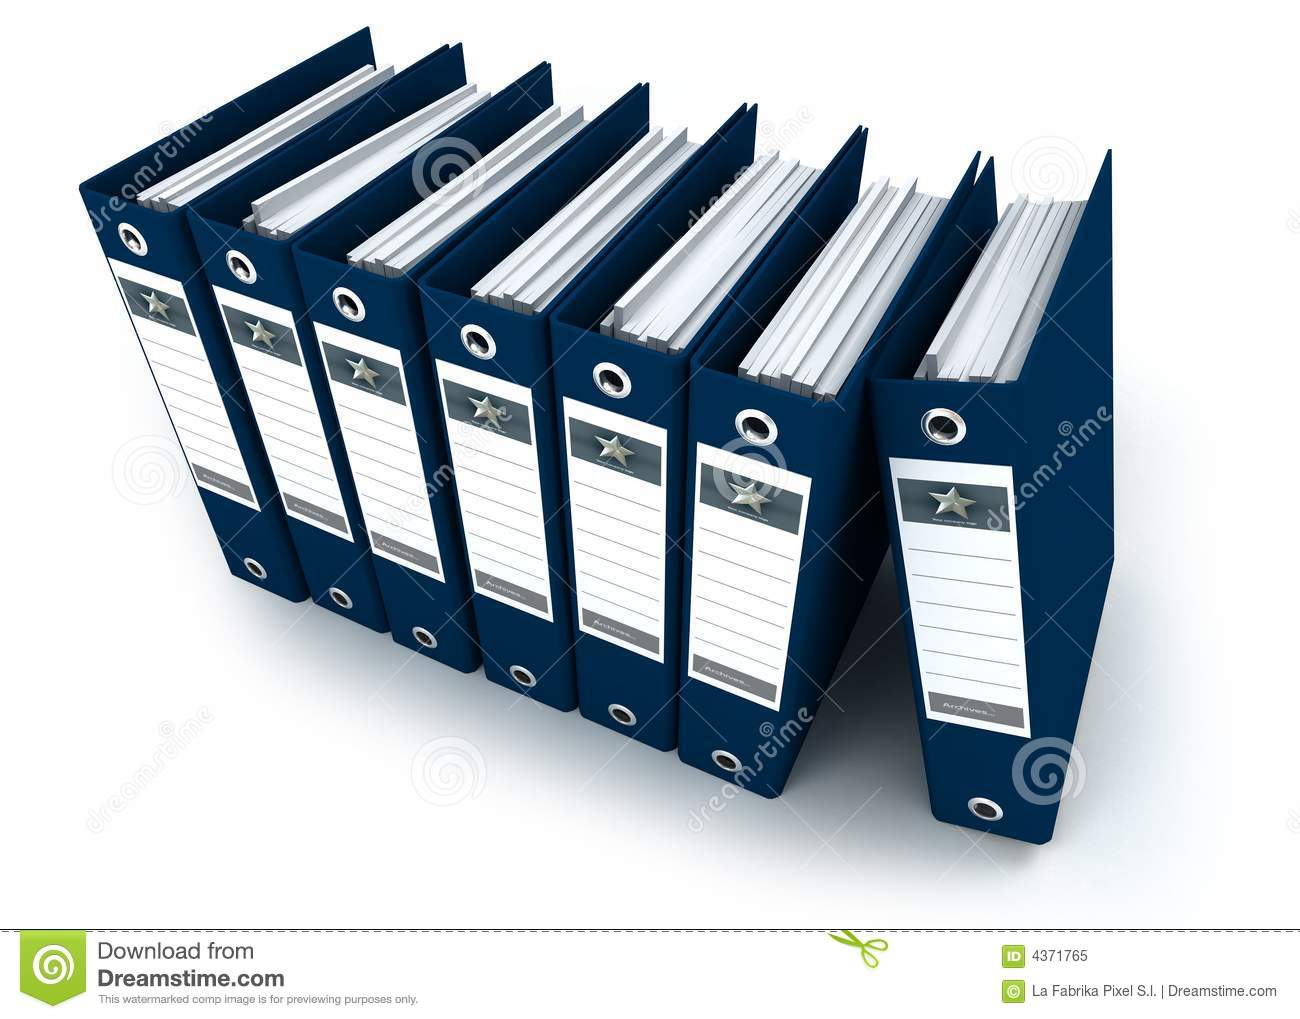 Organized Binder Clipart Binders In A Row clipart